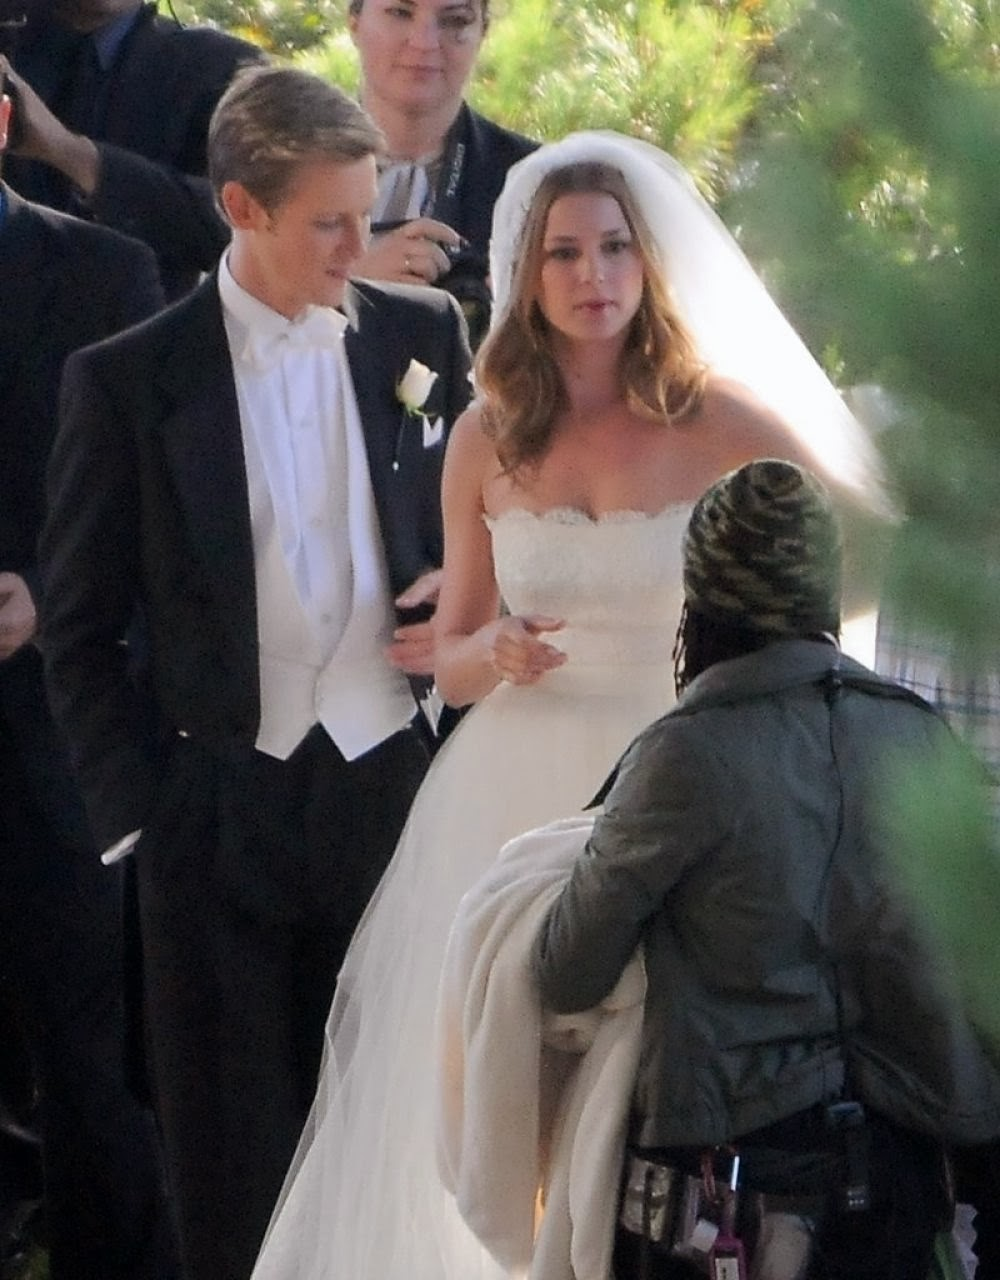 Emily vancamp photos in wedding dress on the set of revenge in palos verdes